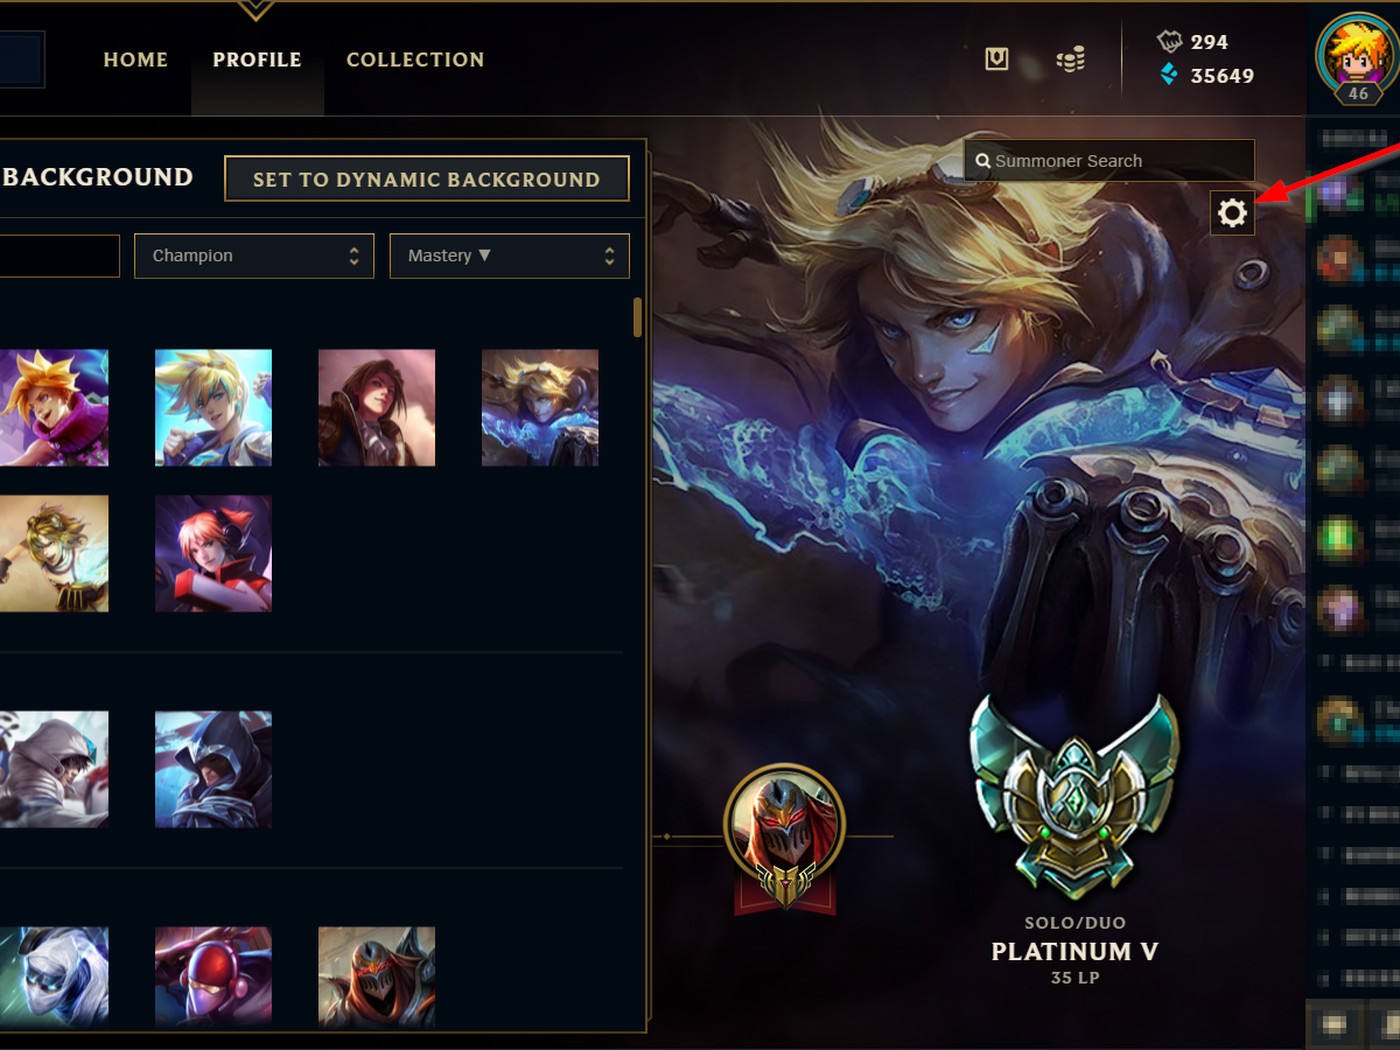 Youll be able to choose what champion is your profile background 1400x1050